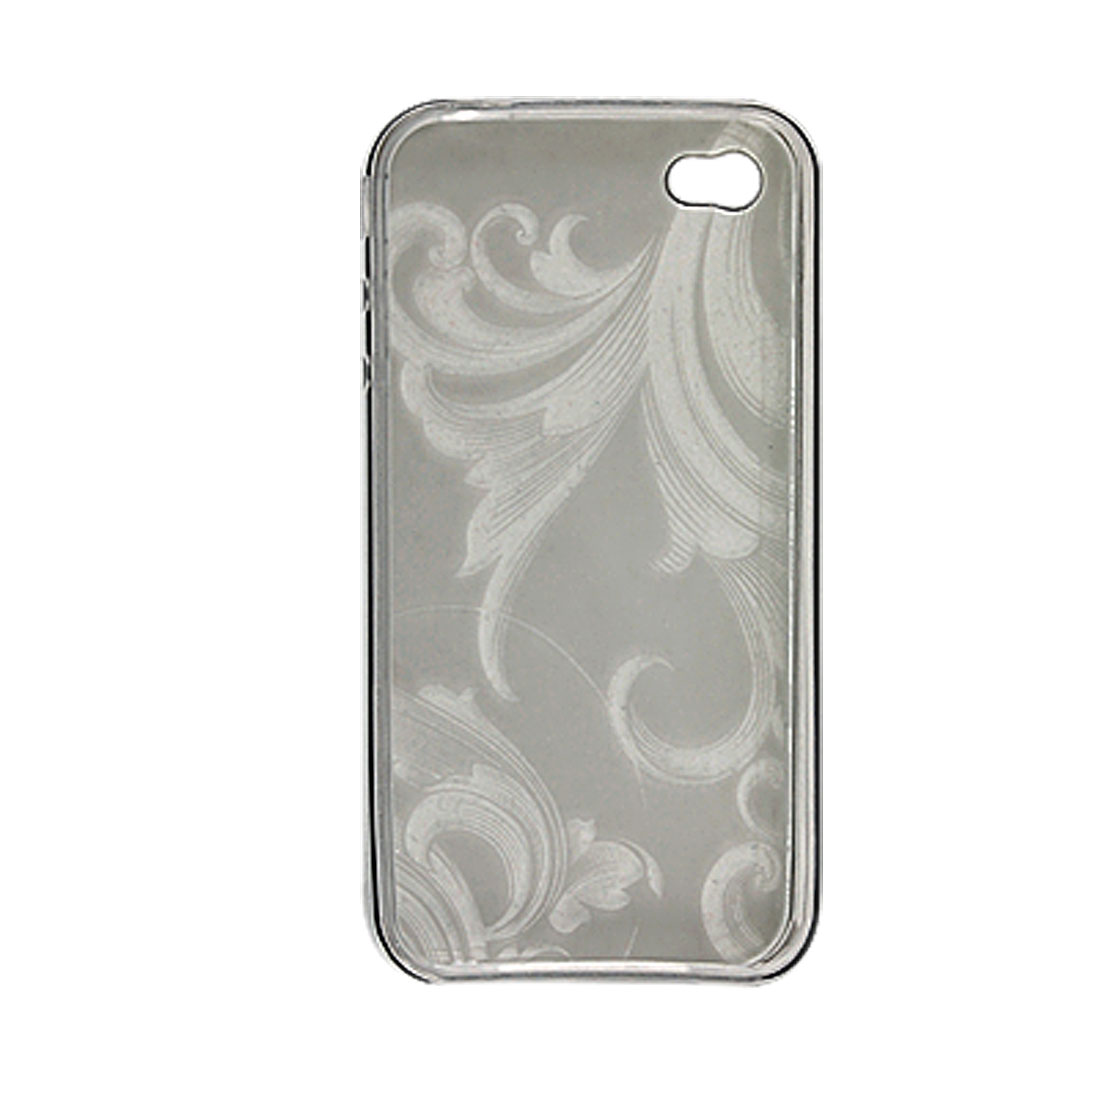 Gray Flower Soft Plastic Skin Cover + Stylus Pen for iPhone 4